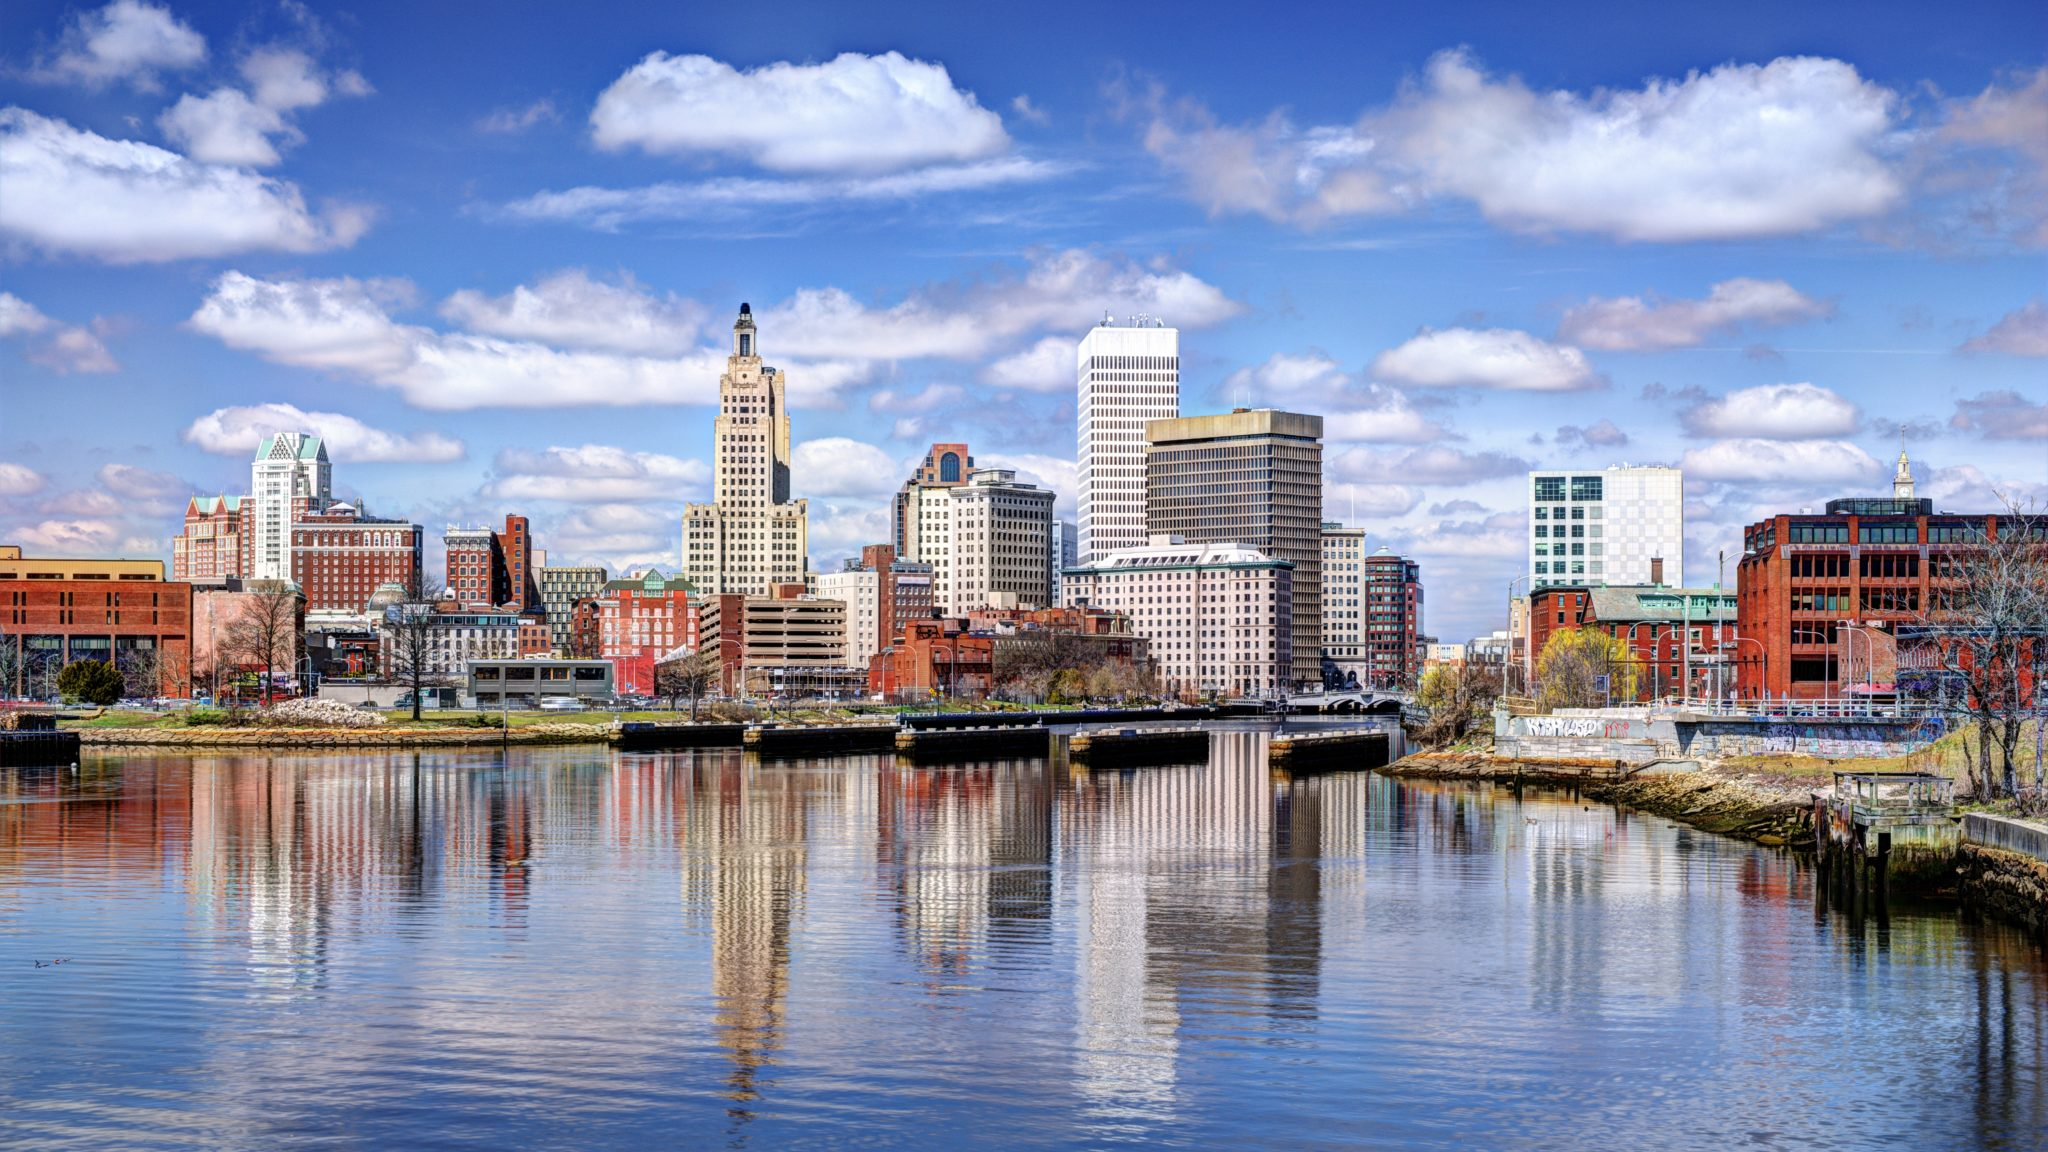 5 Things You MUST Do in Providence, RI